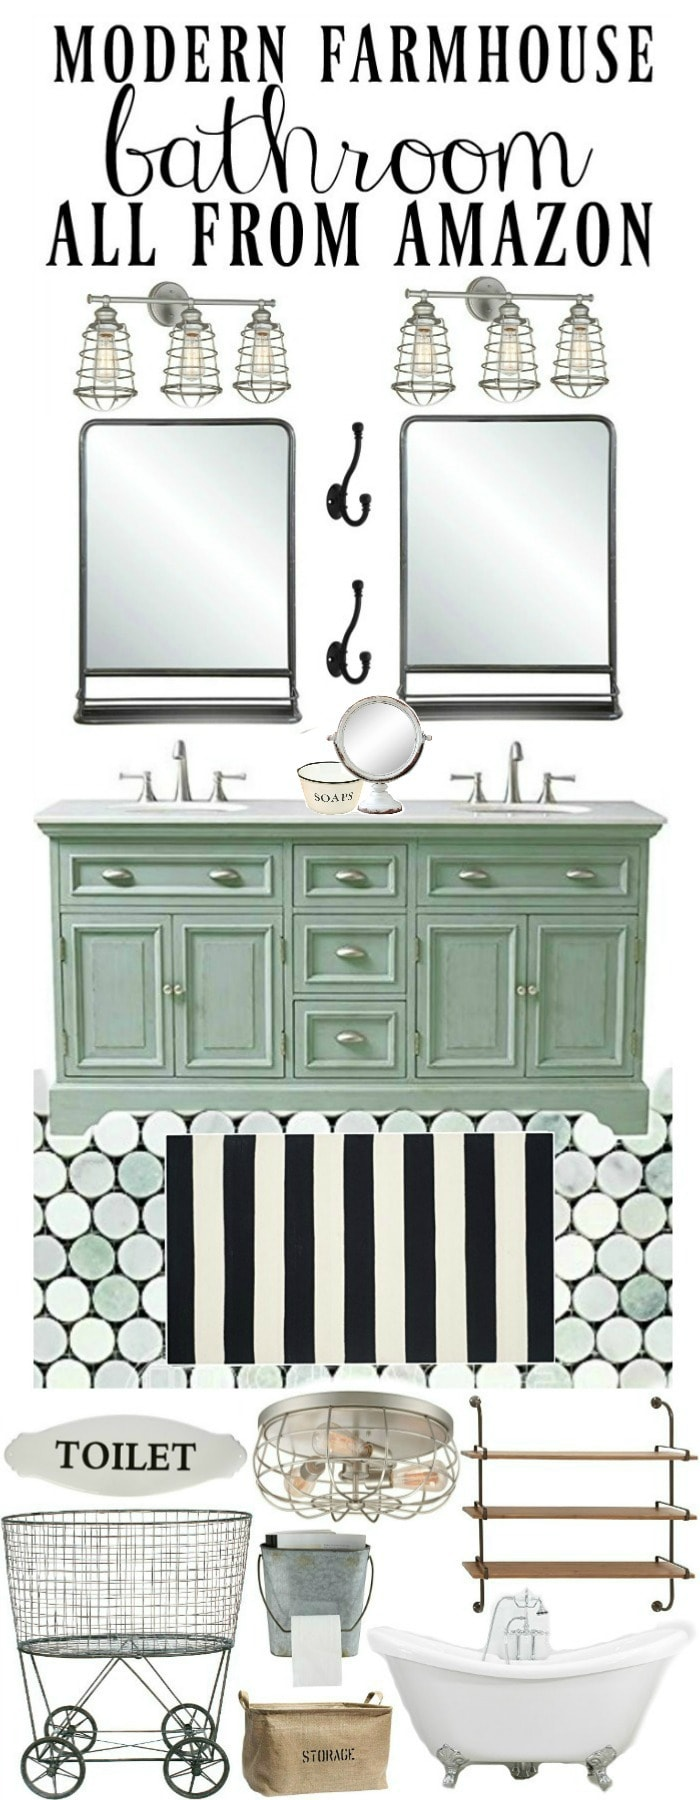 Modern farmhouse bathroom design - All from Amazon!